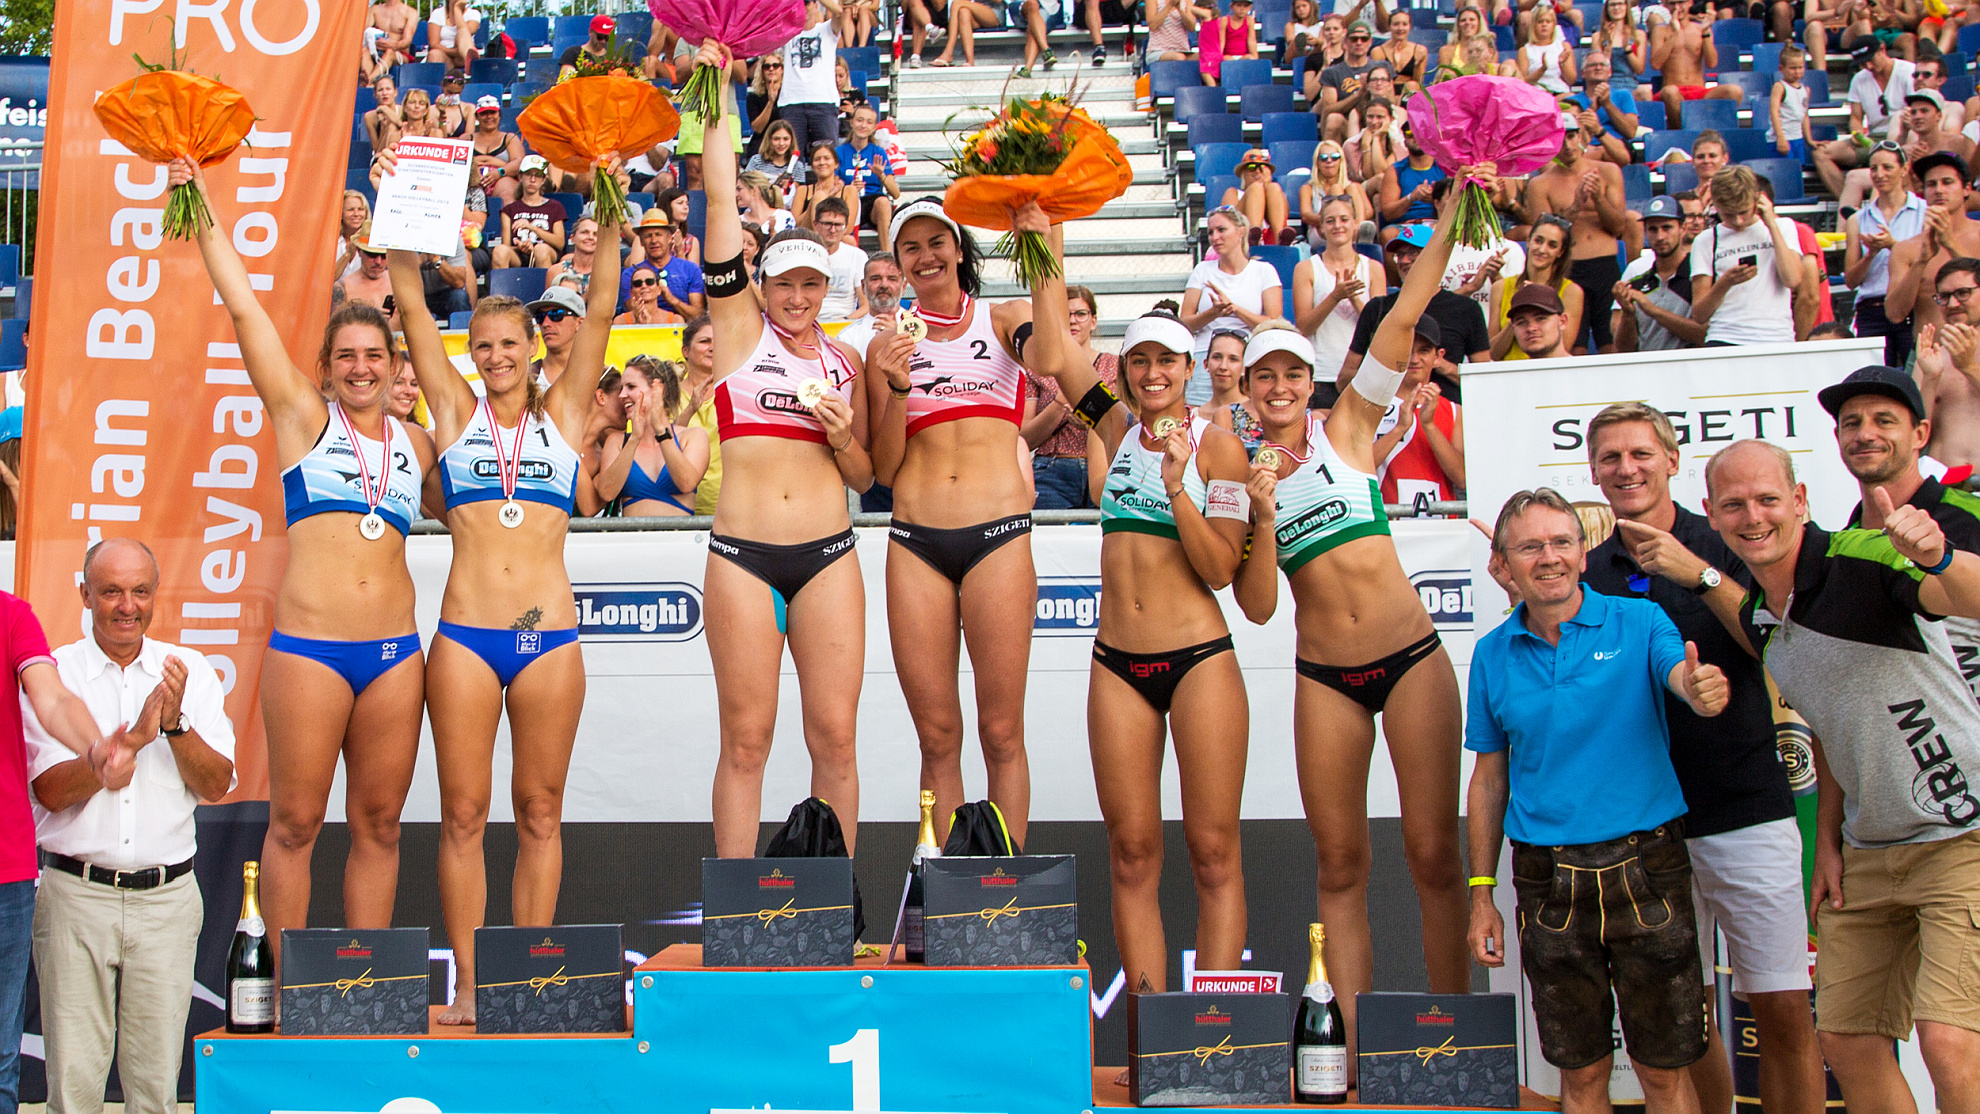 FOTO © PRO Beach Battle/Gert Nepel